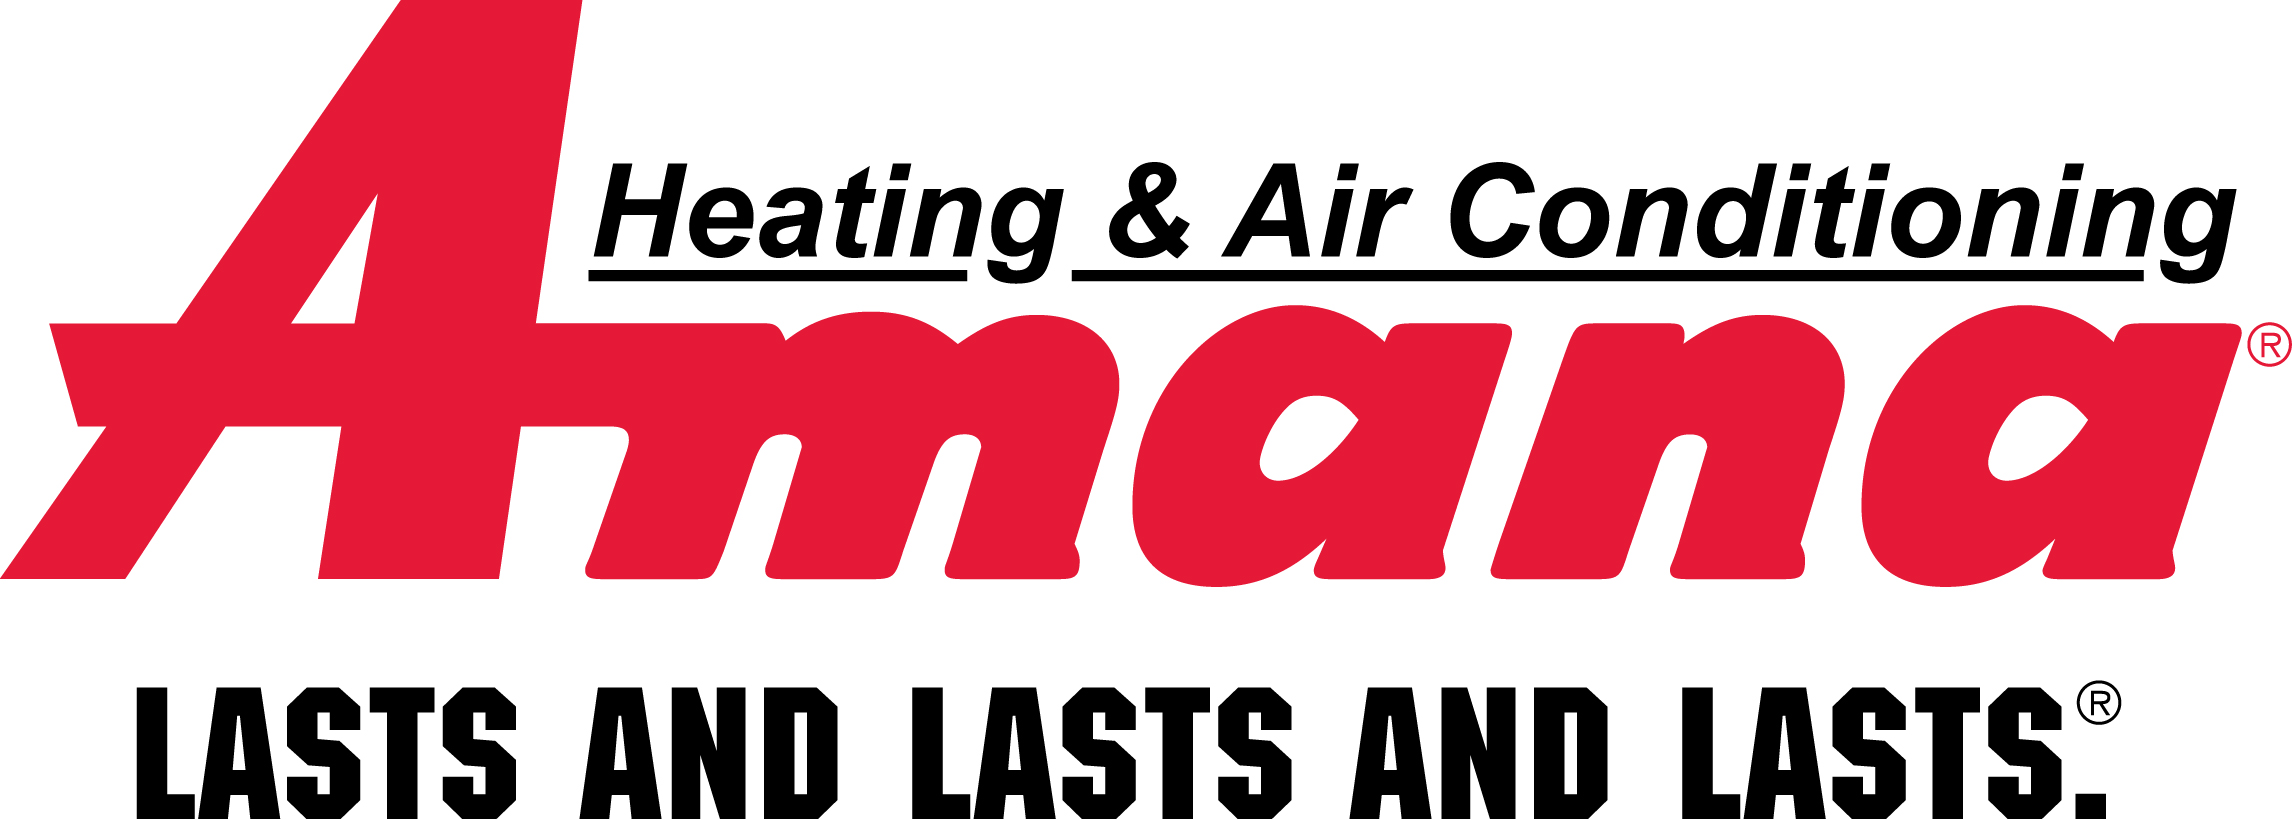 Amana Heating Air Conditioning